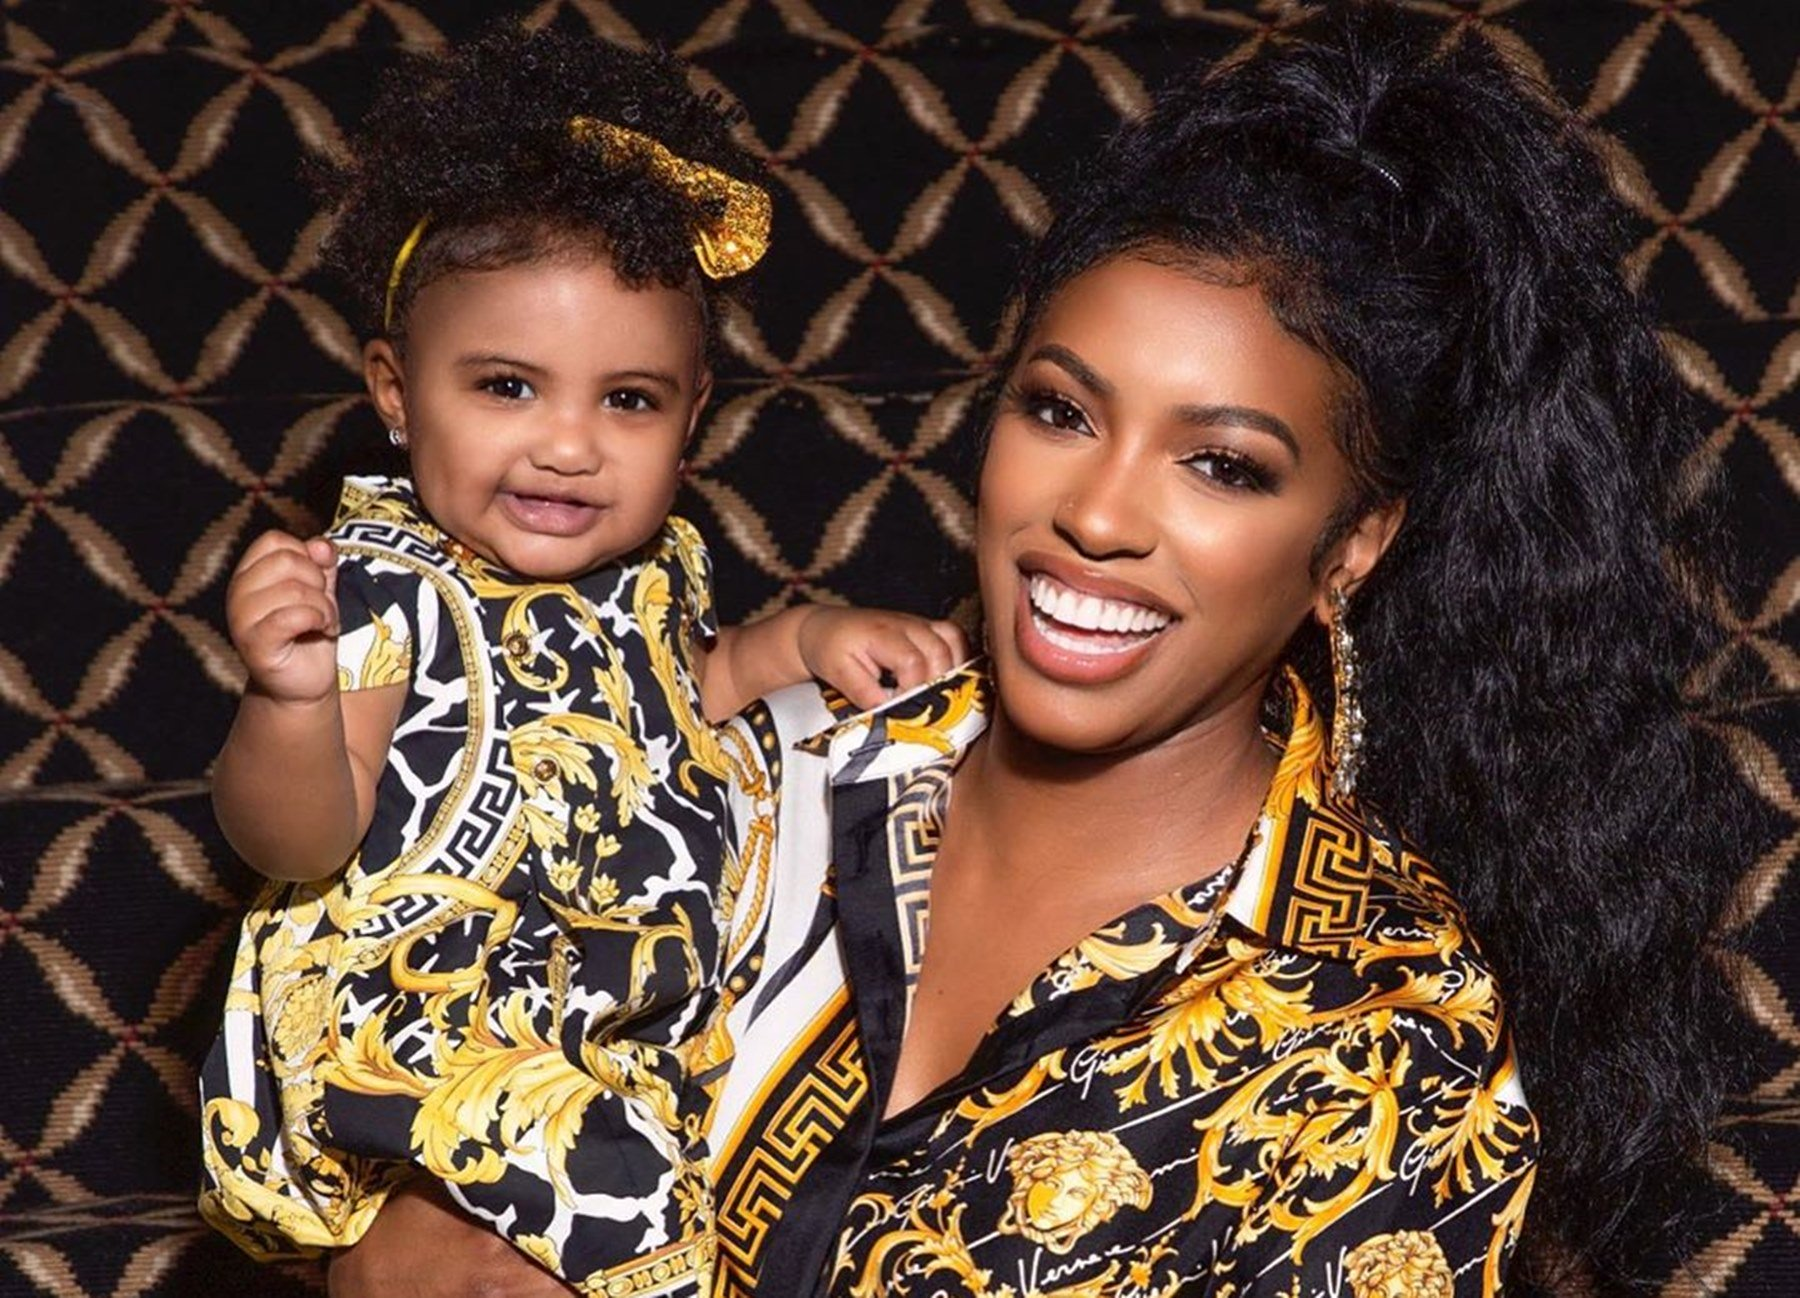 porsha-williams-shares-the-funniest-photos-with-her-baby-girl-pj